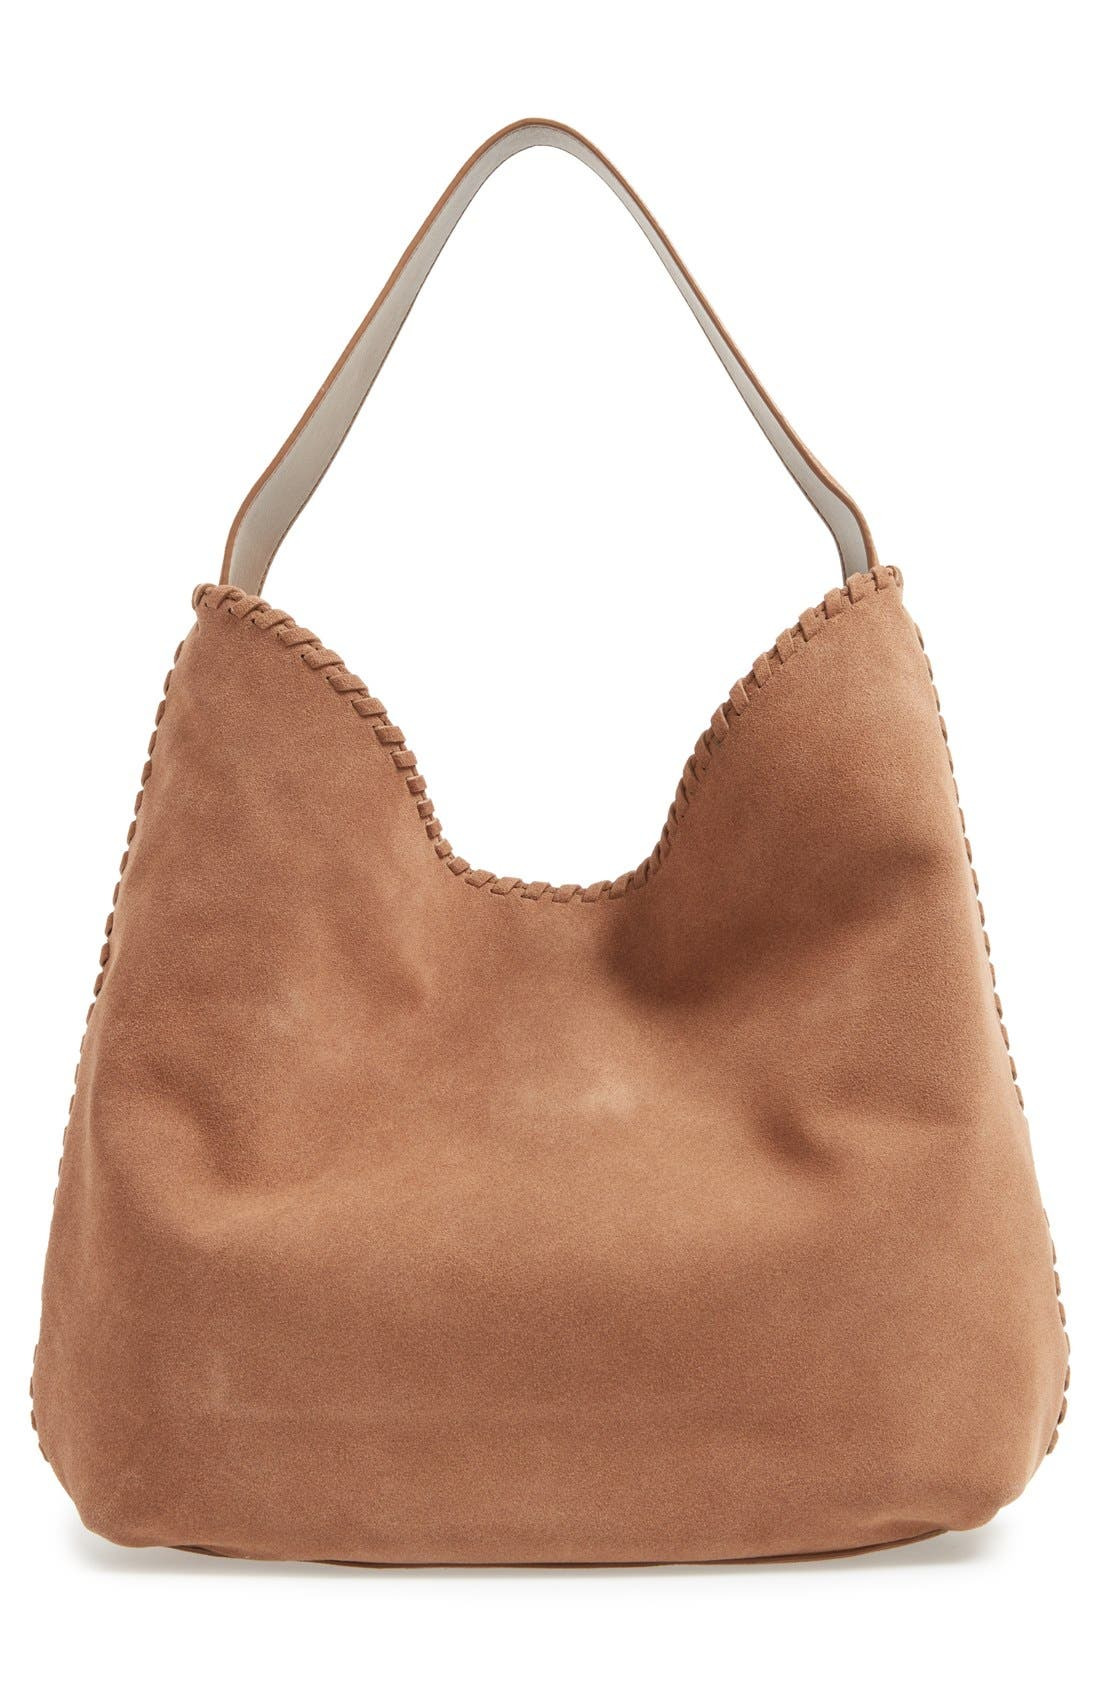 Alternate Image 3  - Tory Burch 'Marion' Suede Hobo